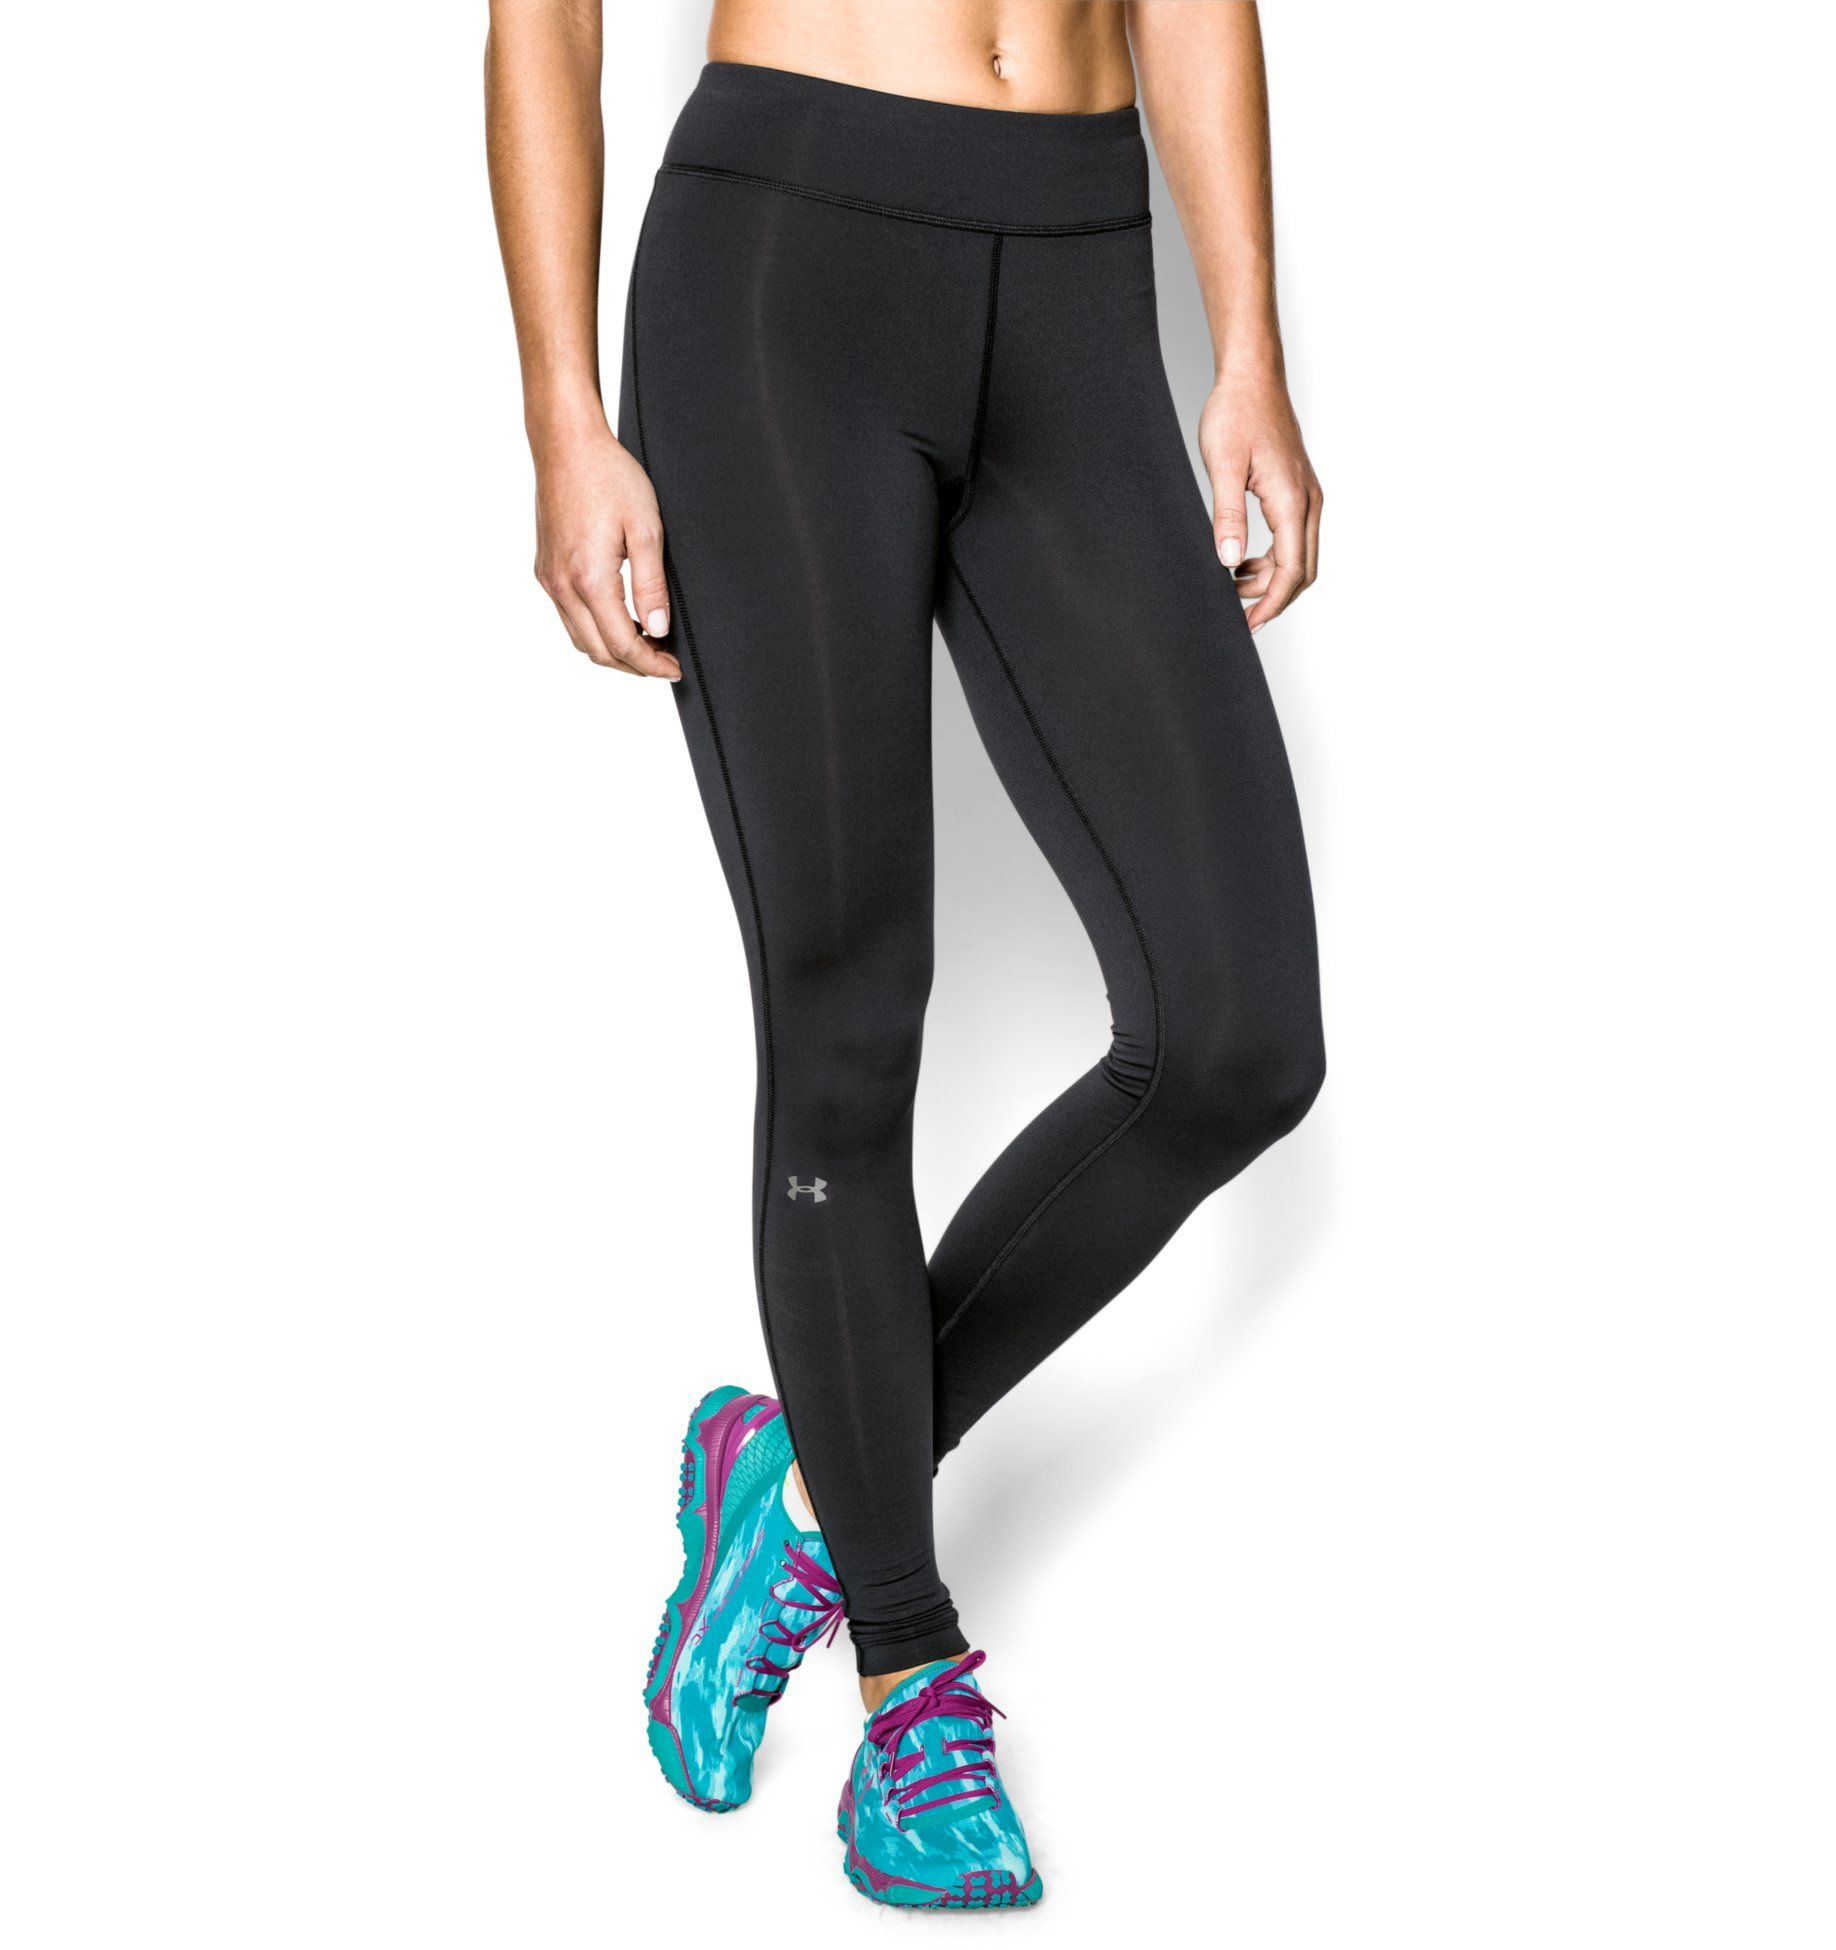 b633c2f020ae1 7 Best Thermal Leggings For Women To Keep Warm During Winter 2018